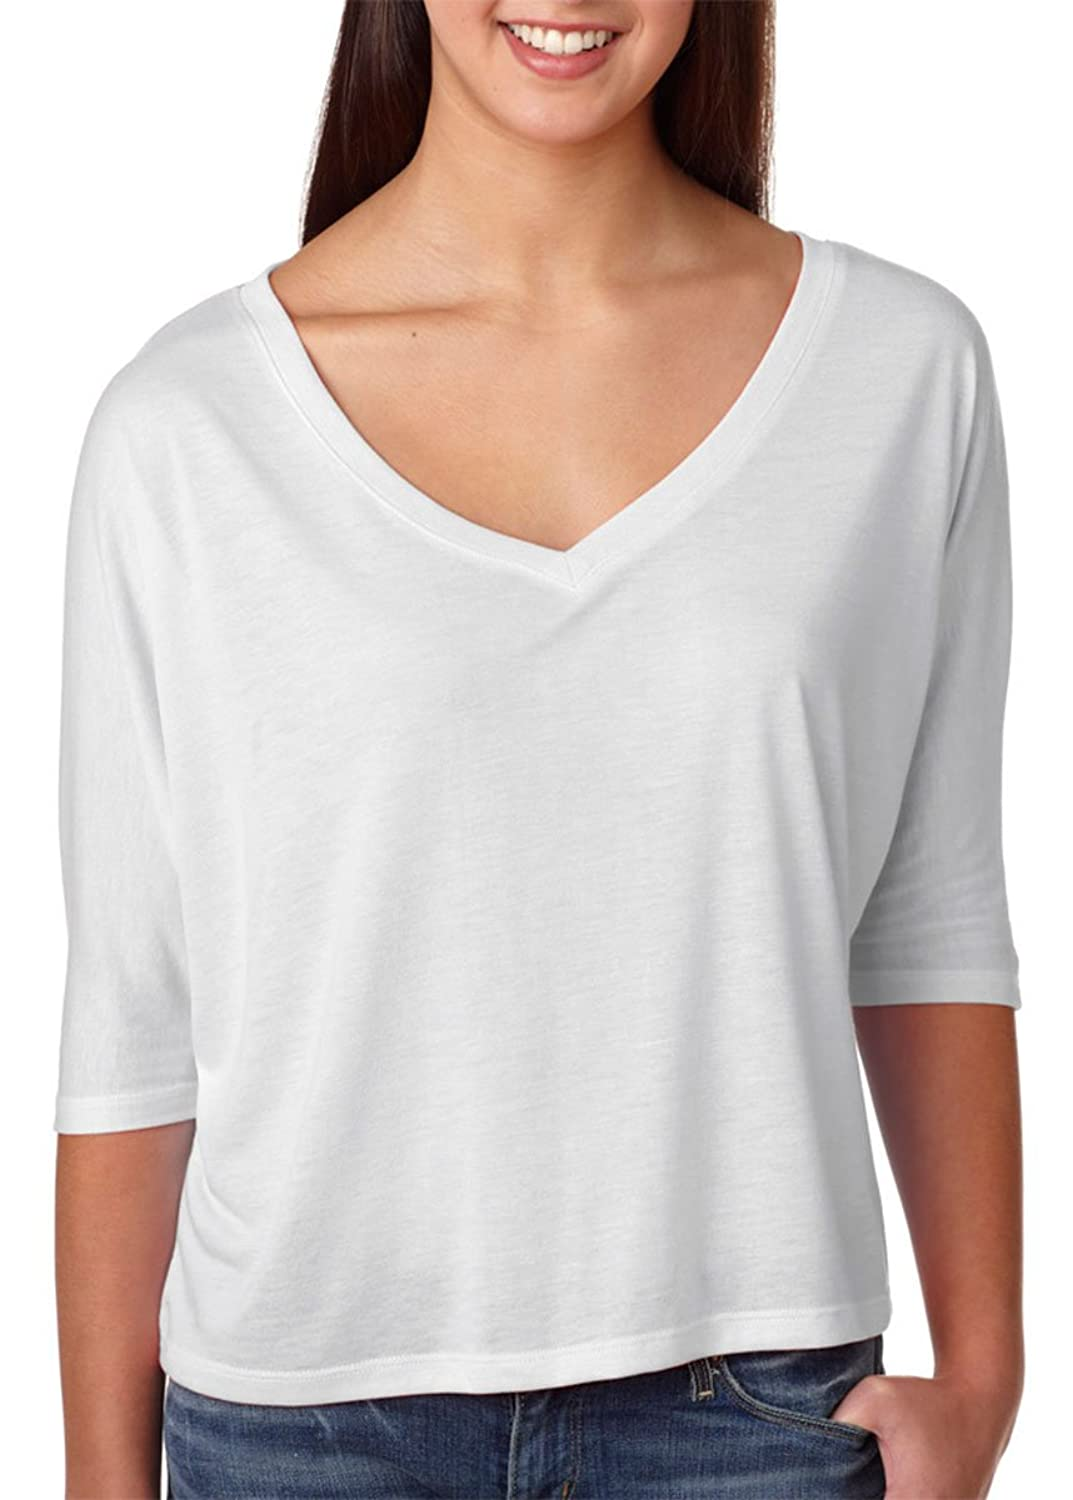 Bella 8825 Ladies Flowy V-Neck Cropped Half-Sleeve T-Shirt, White, Large